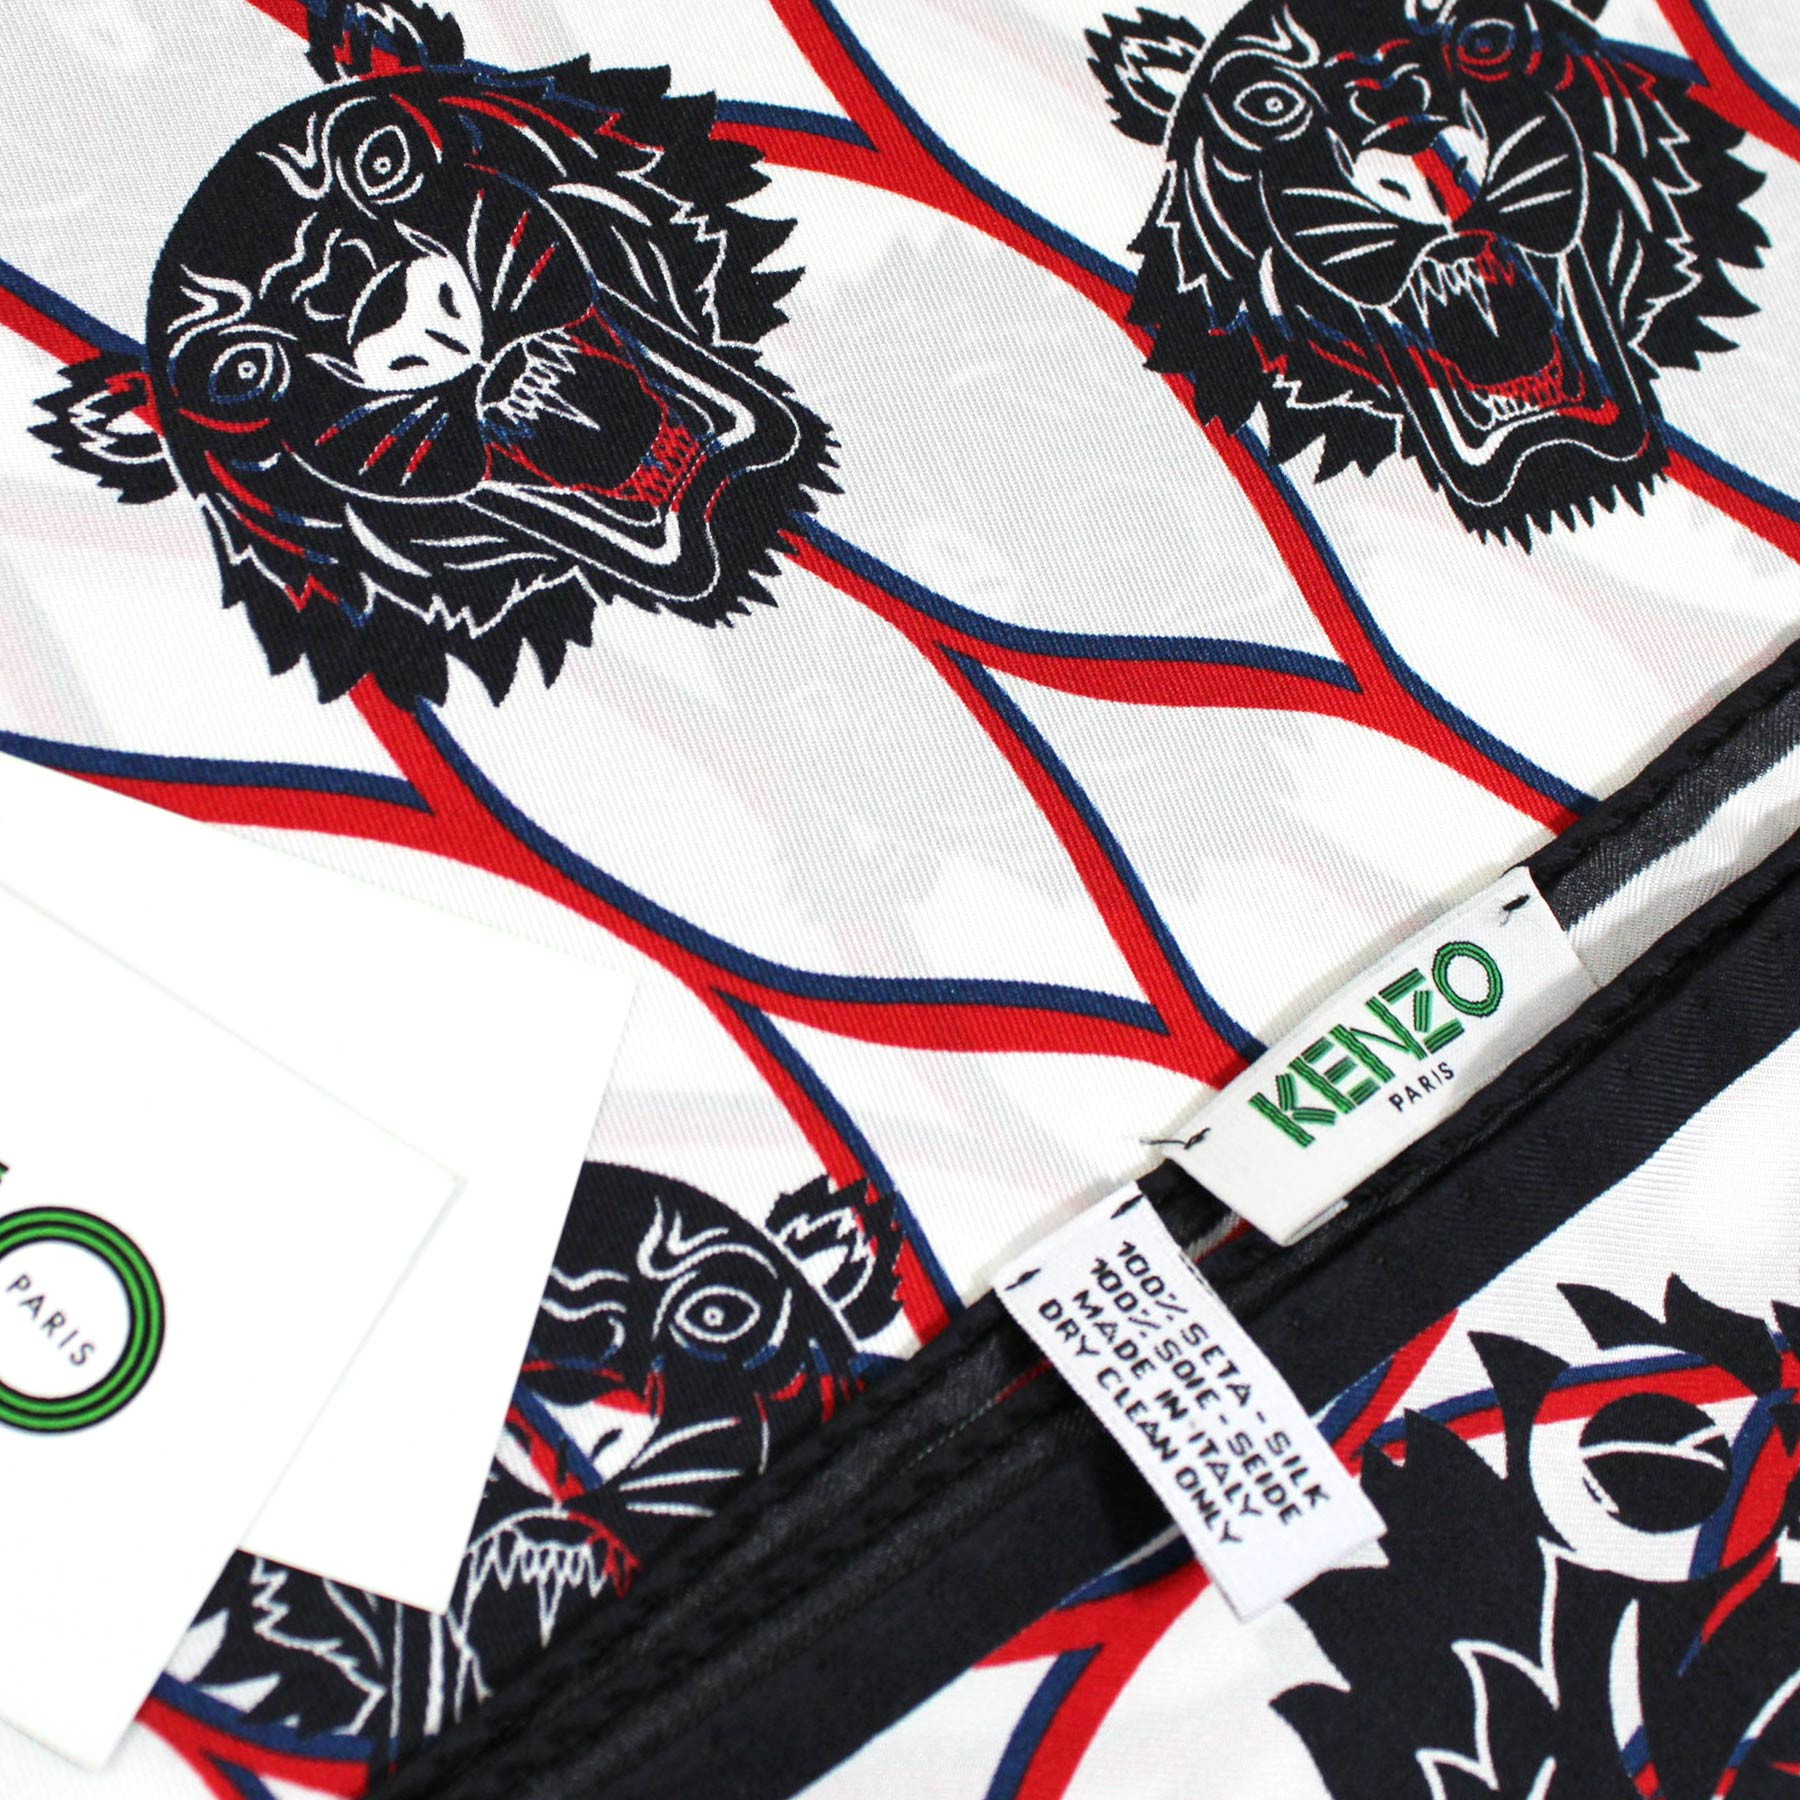 Kenzo Scarf White Navy Red Logo & Tiger Design - Large Silk Square Scarf